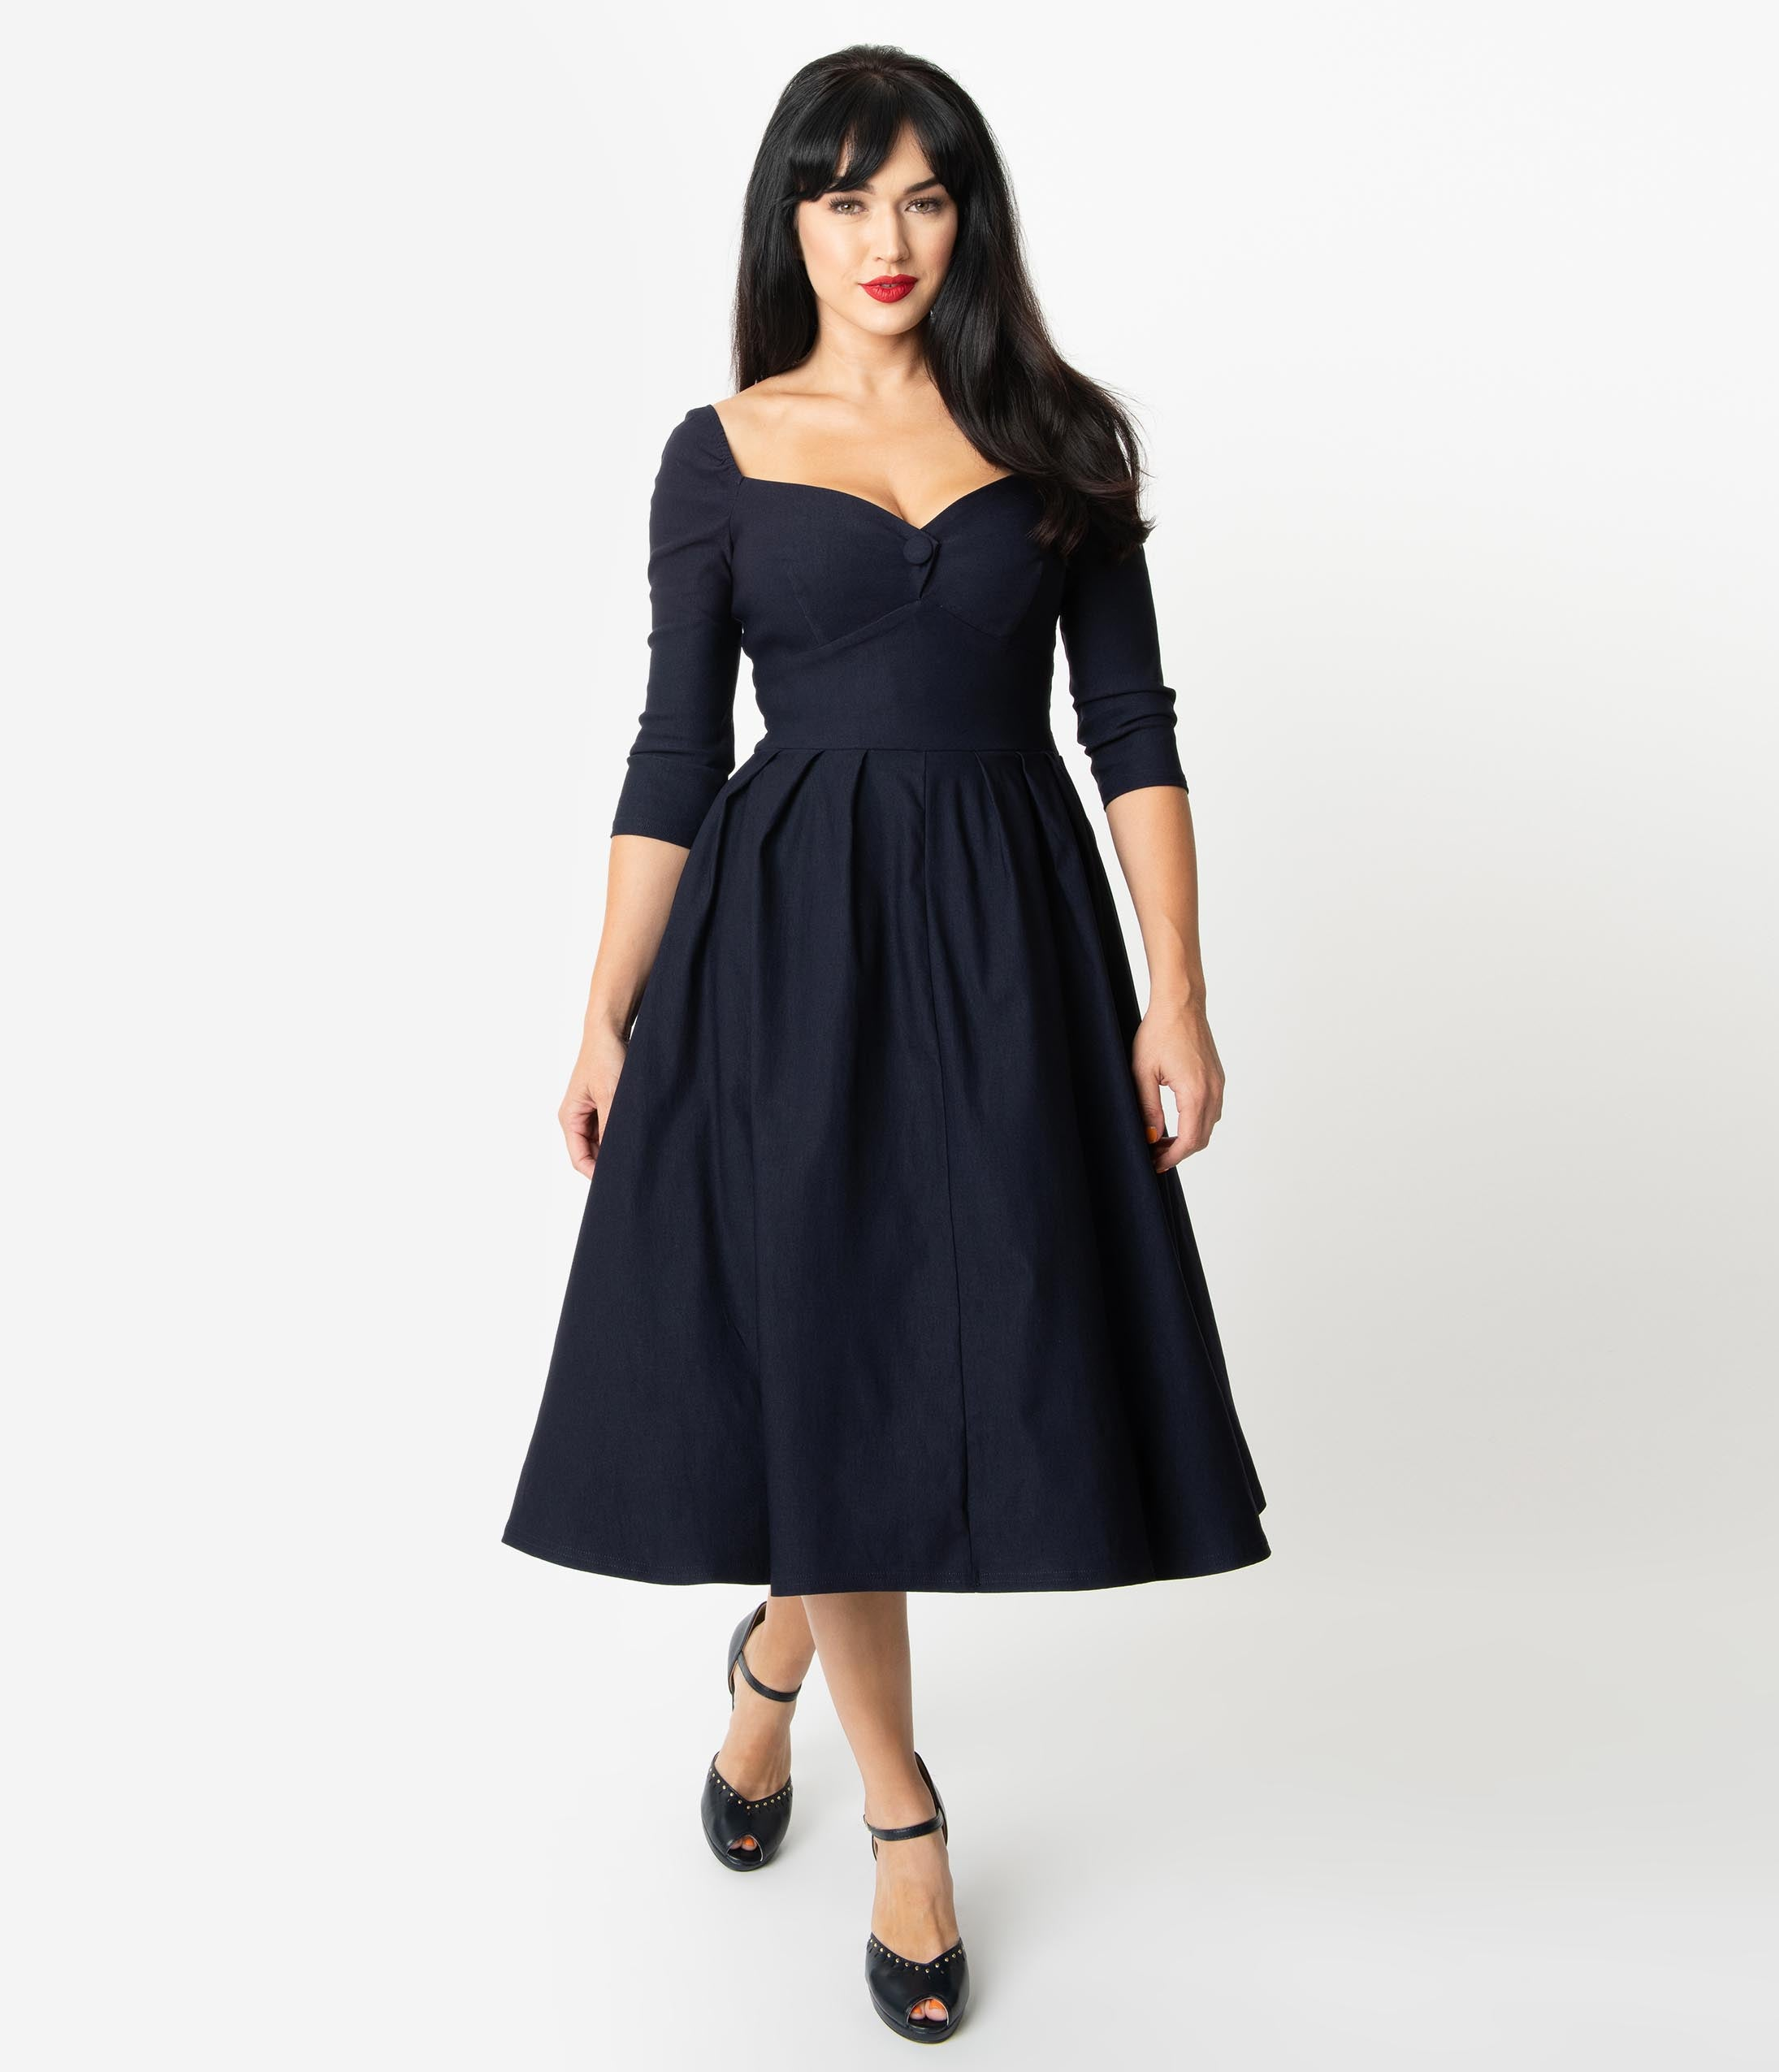 500 Vintage Style Dresses for Sale | Vintage Inspired Dresses Unique Vintage 1950S Style Navy Sweetheart Lamar Swing Dress $98.00 AT vintagedancer.com